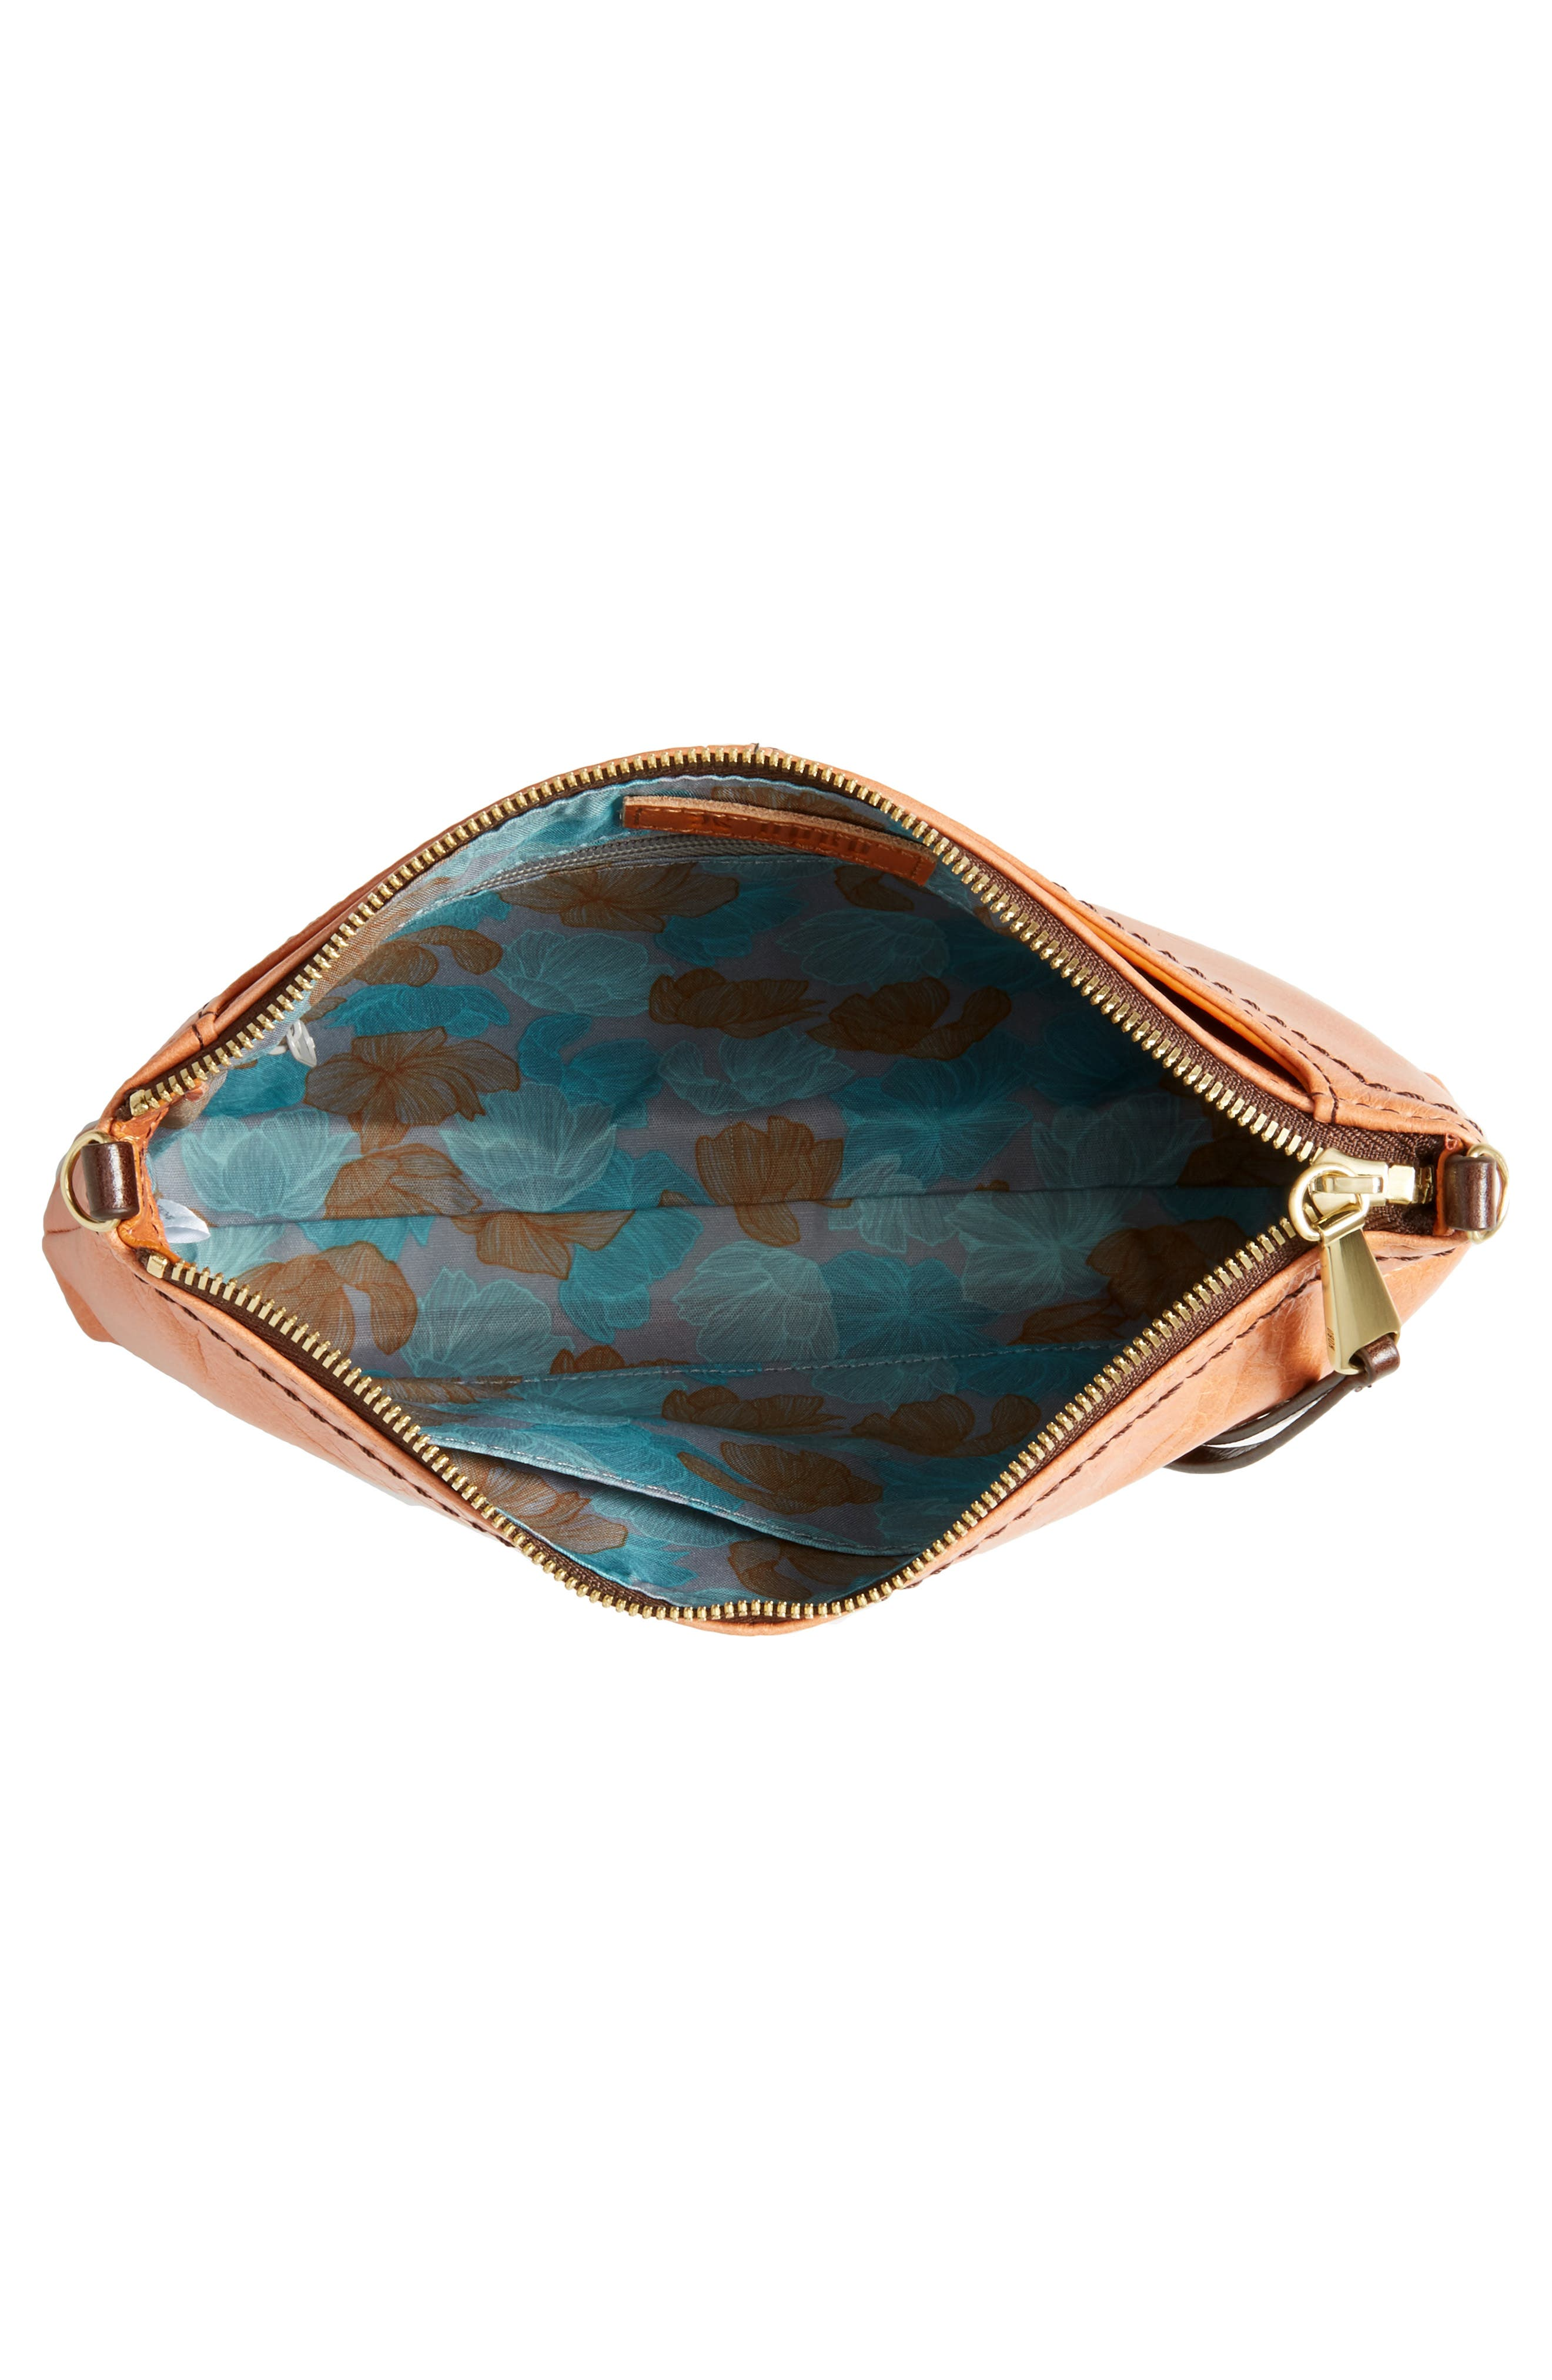 'Darcy' Leather Crossbody Bag,                             Alternate thumbnail 88, color,